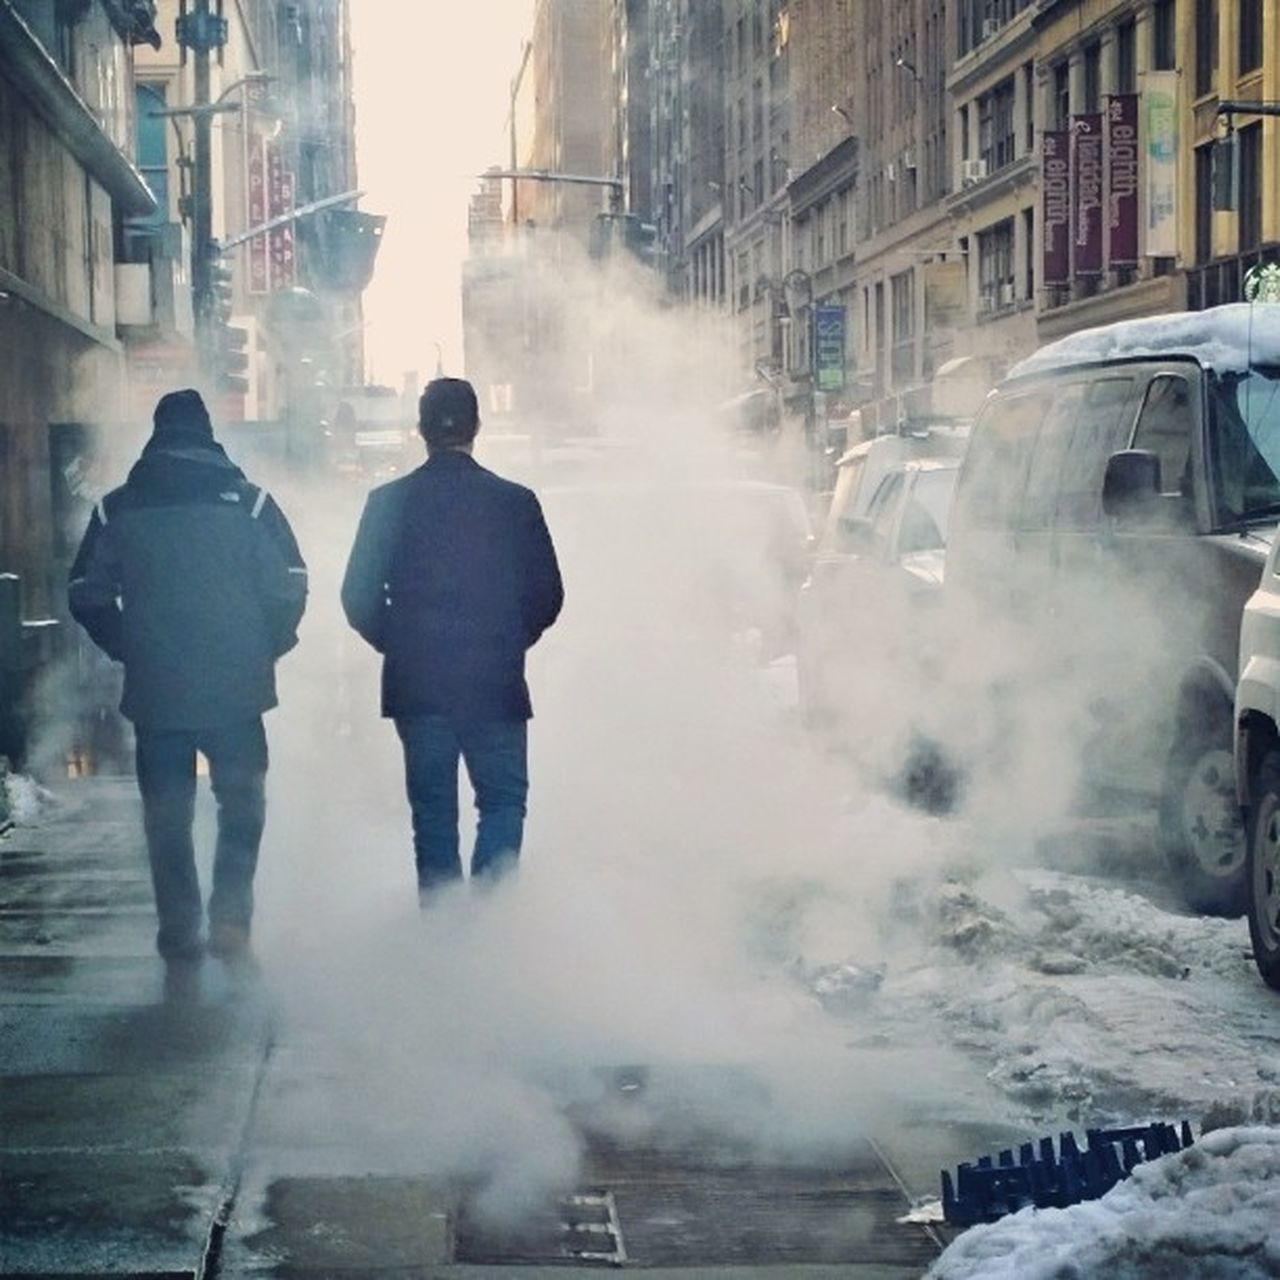 Men. Vents. Steam. Scenes that make me Nostalgic  . I fall in love with NY more by the day man... ThankYouHollywood Lumia1020photography iHeartNY